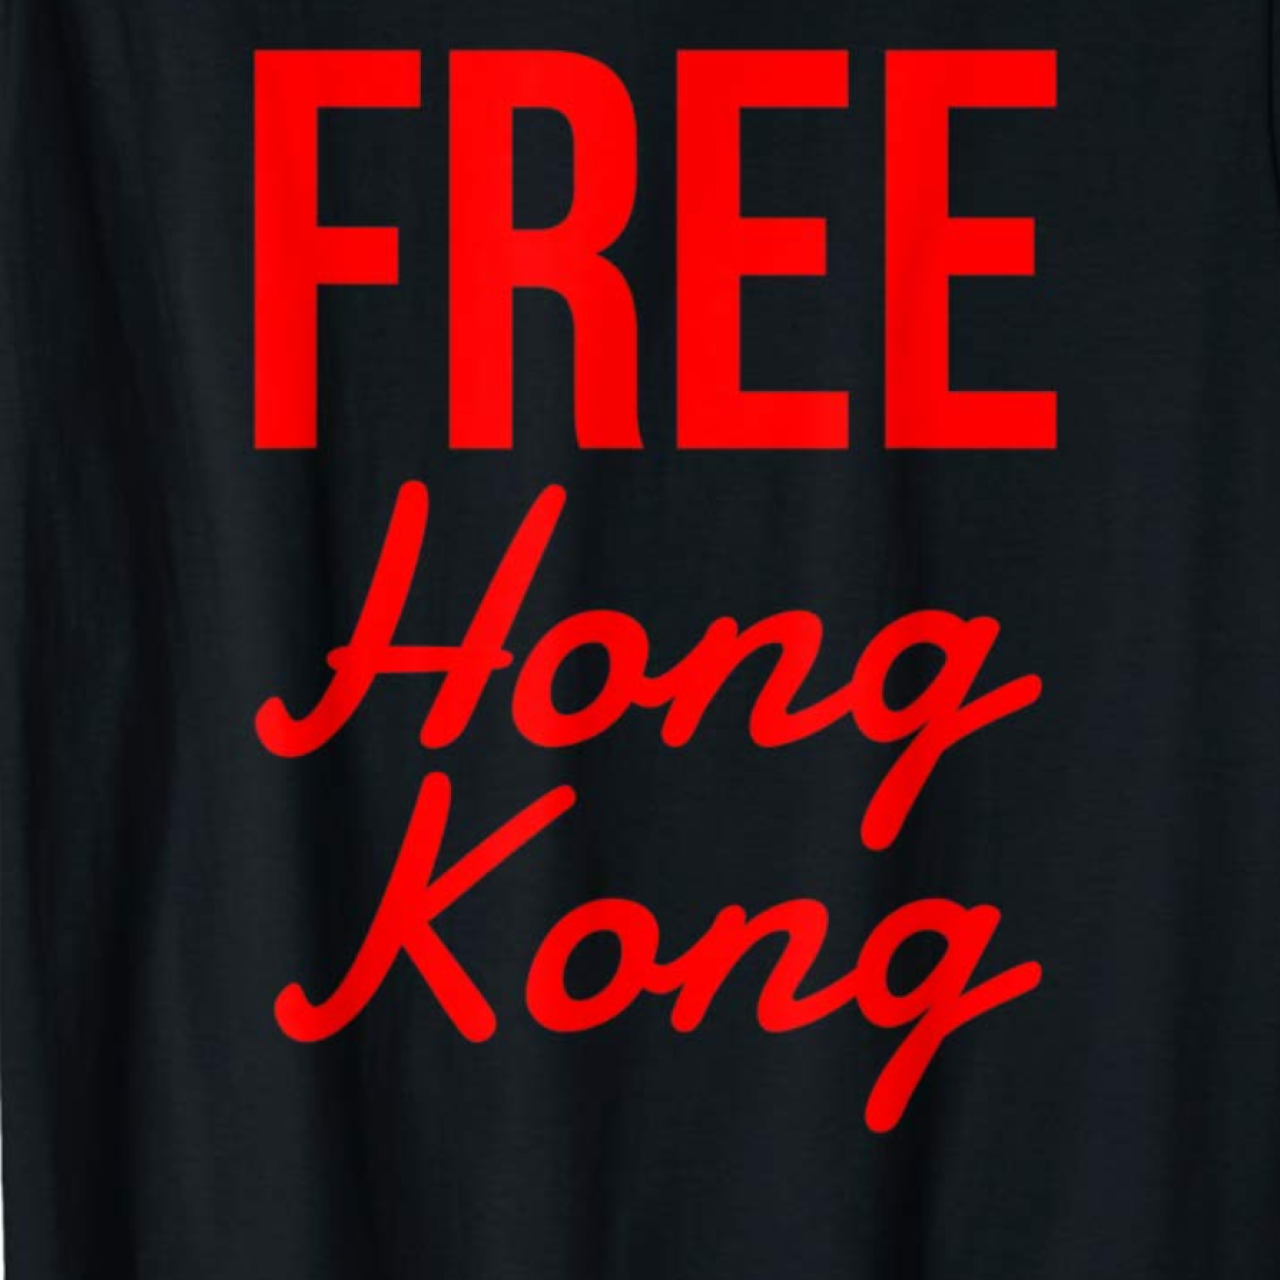 156ea9c1c60e7 Amazon causes online outrage in China with Hong Kong protest T ...